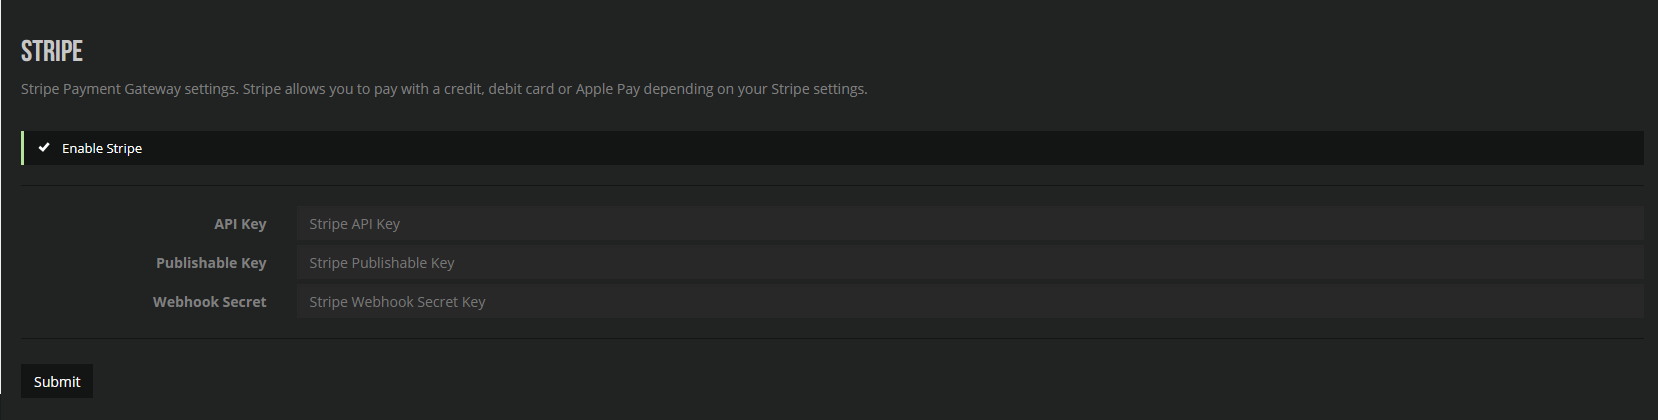 File:Stripe new 4.png